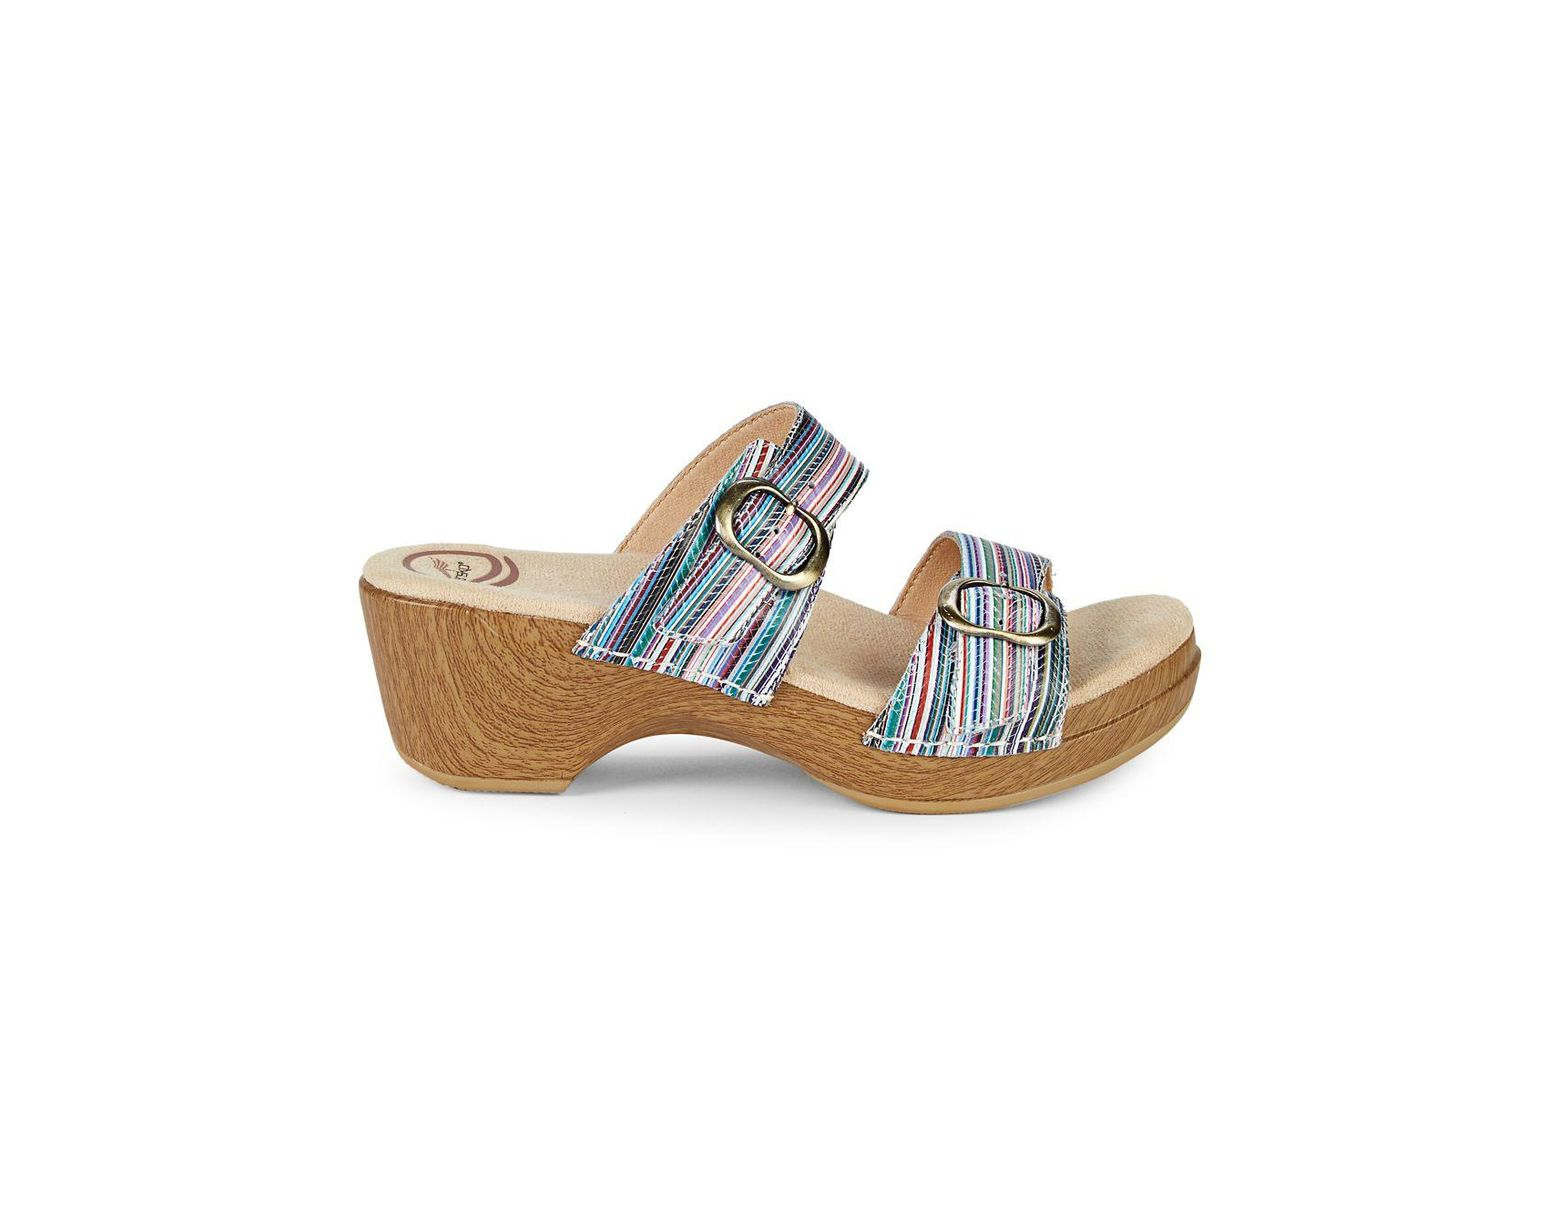 Women's Clog Blue Striped Sandals Sophie Multi nN0Ovm8w